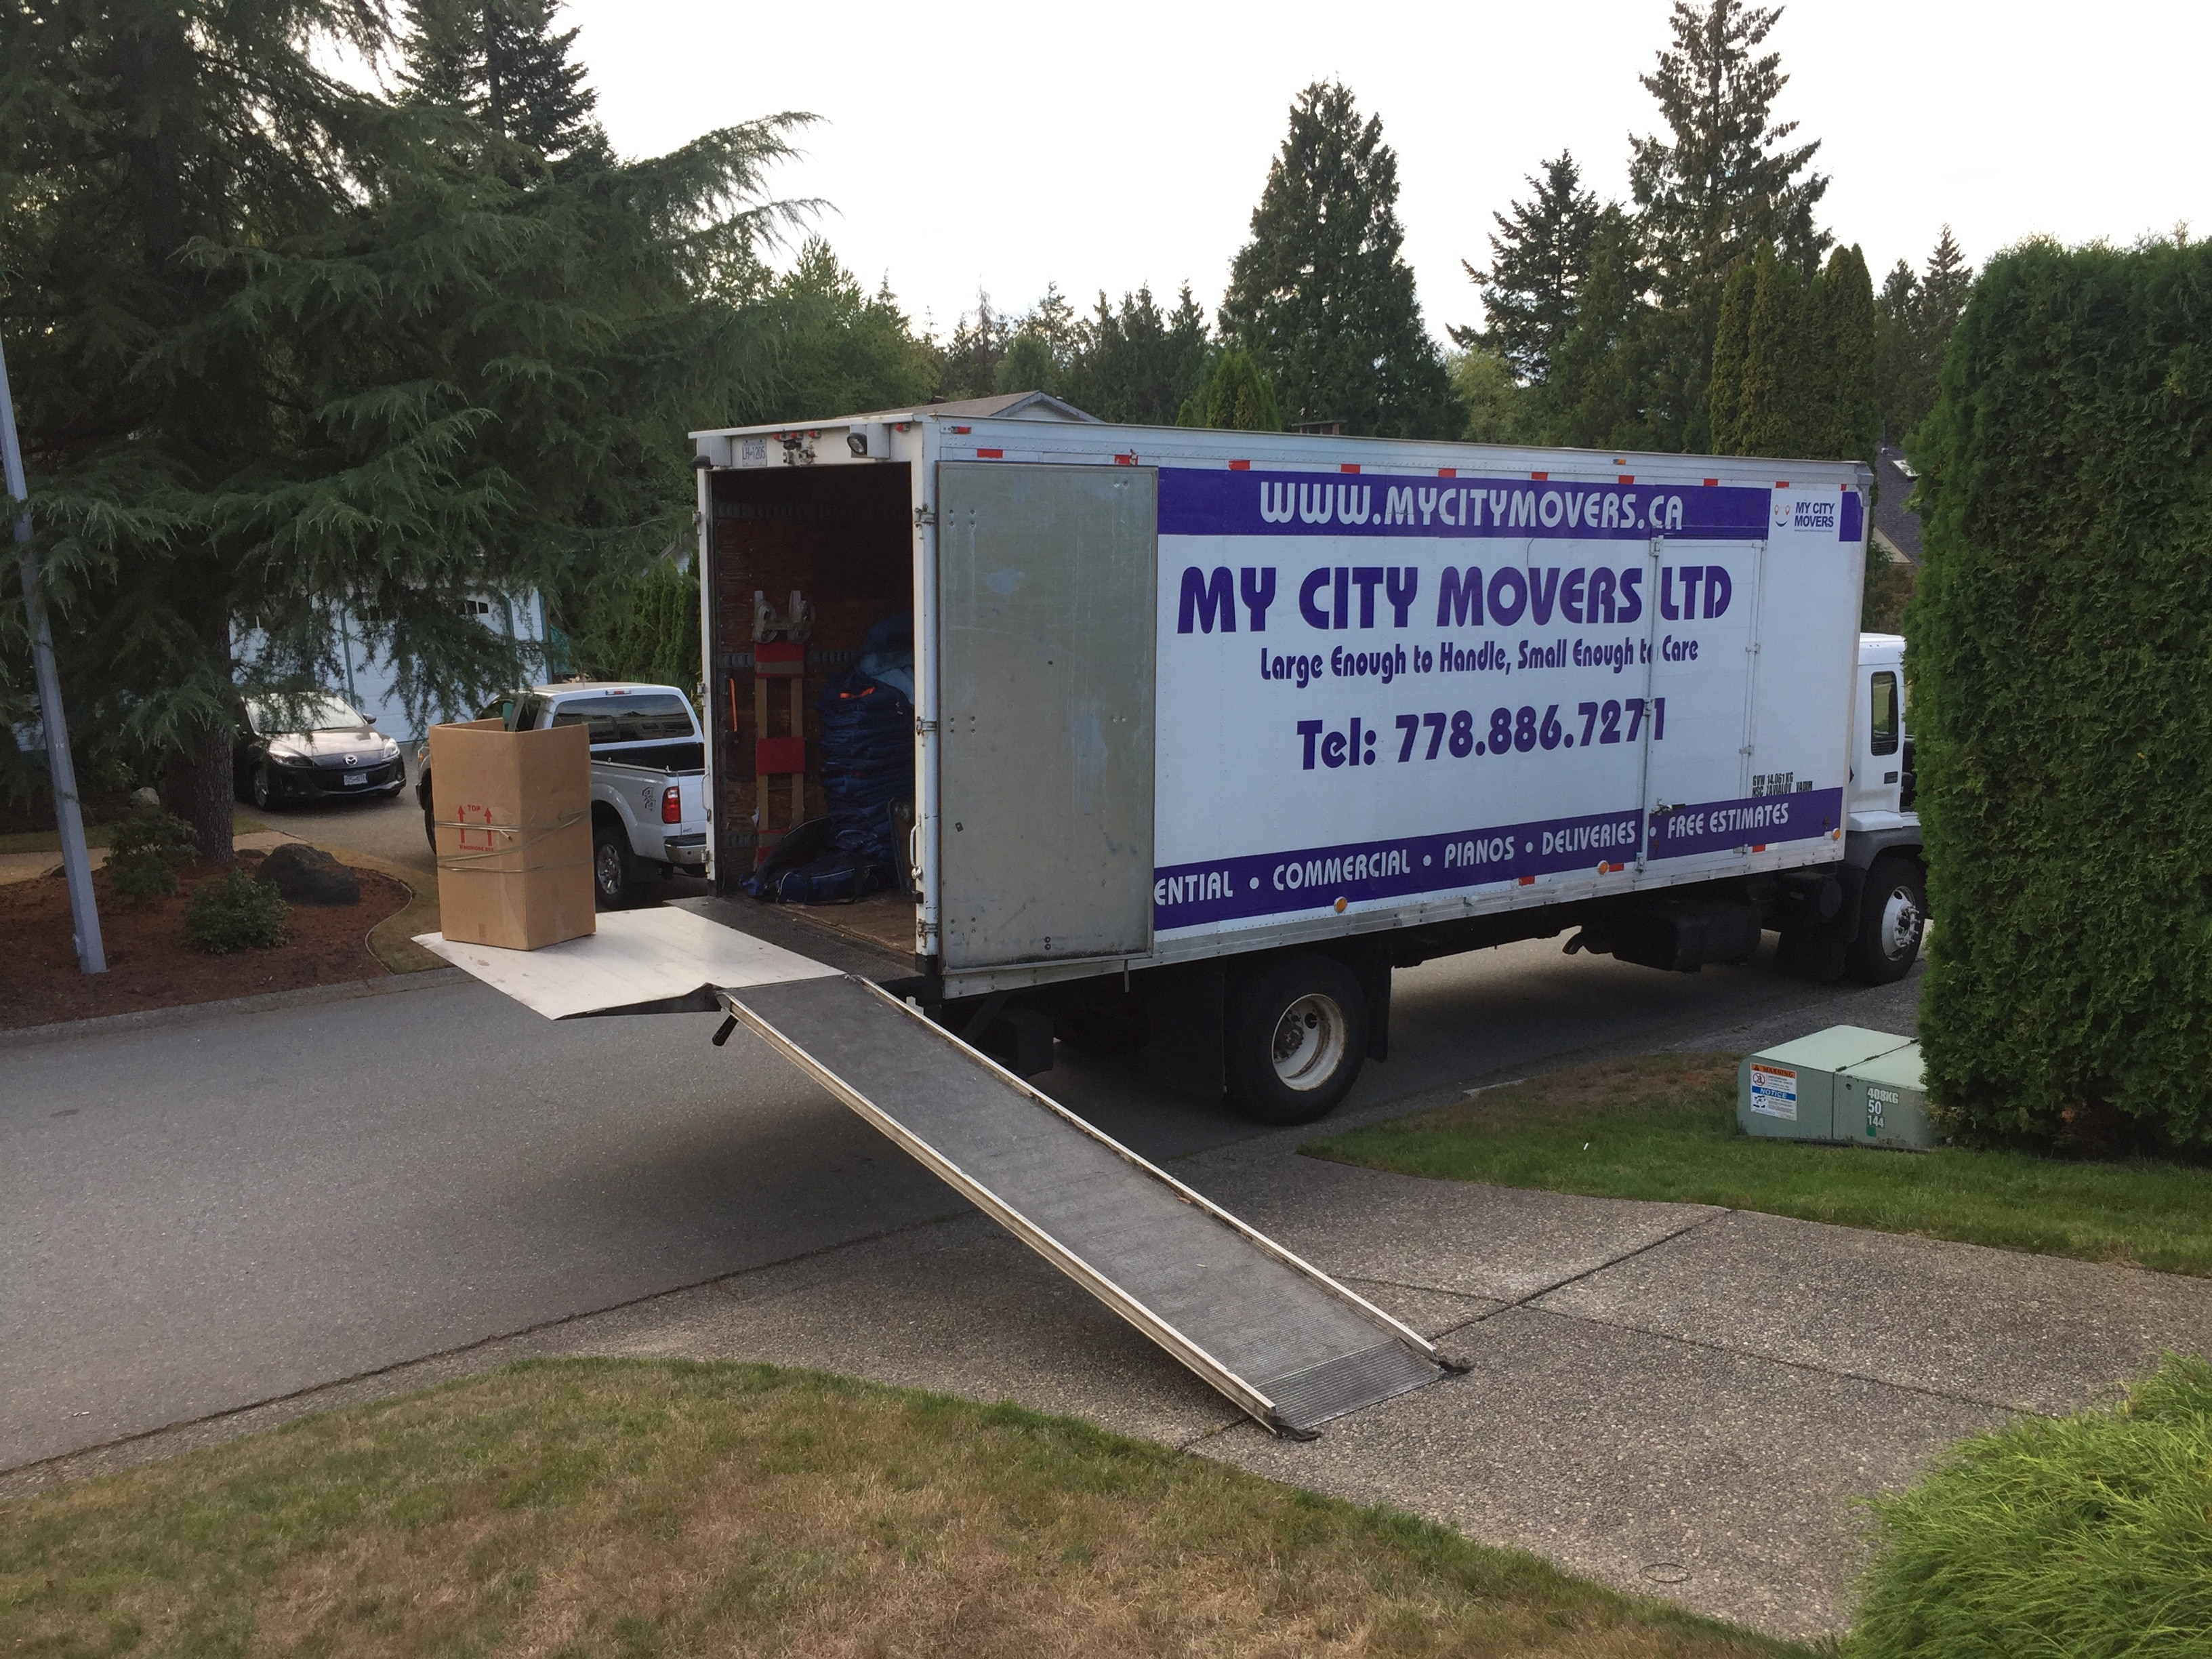 My City Movers